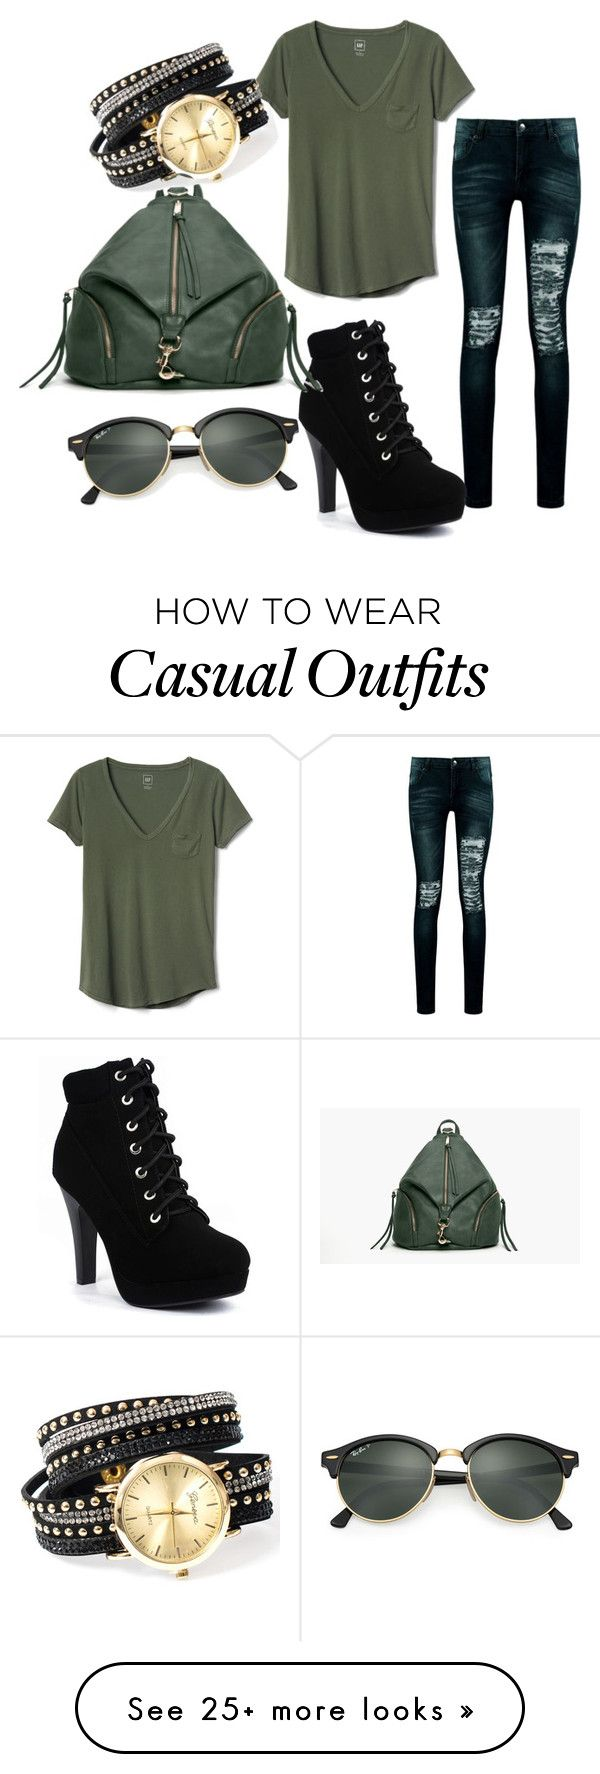 """Slytherin Casual Outfit"" by elenacampedelli on Polyvore featuring Gap, Boohoo and Ray-Ban"